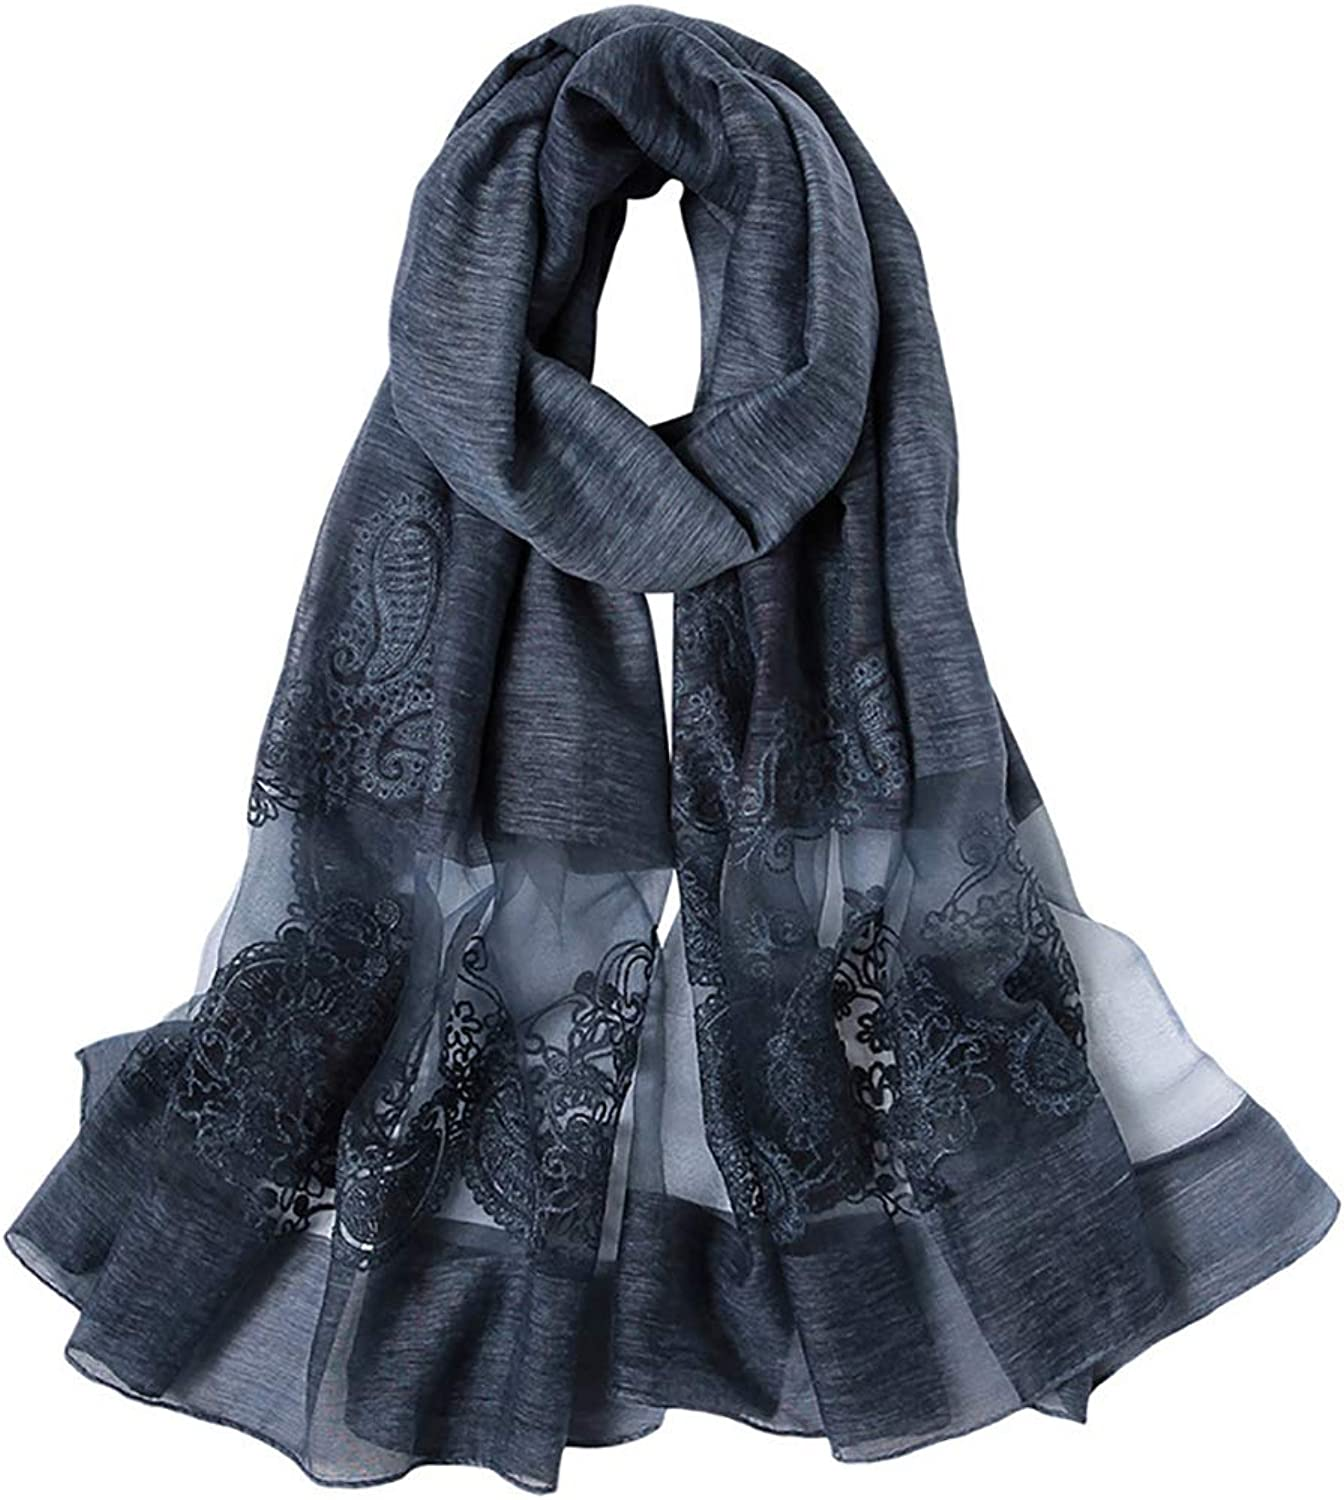 195  85 cm Women's Spring and Autumn New Solid color Embroidered Silk Long Scarf, Small Fresh Silk Scarf Mixed Scarf Female